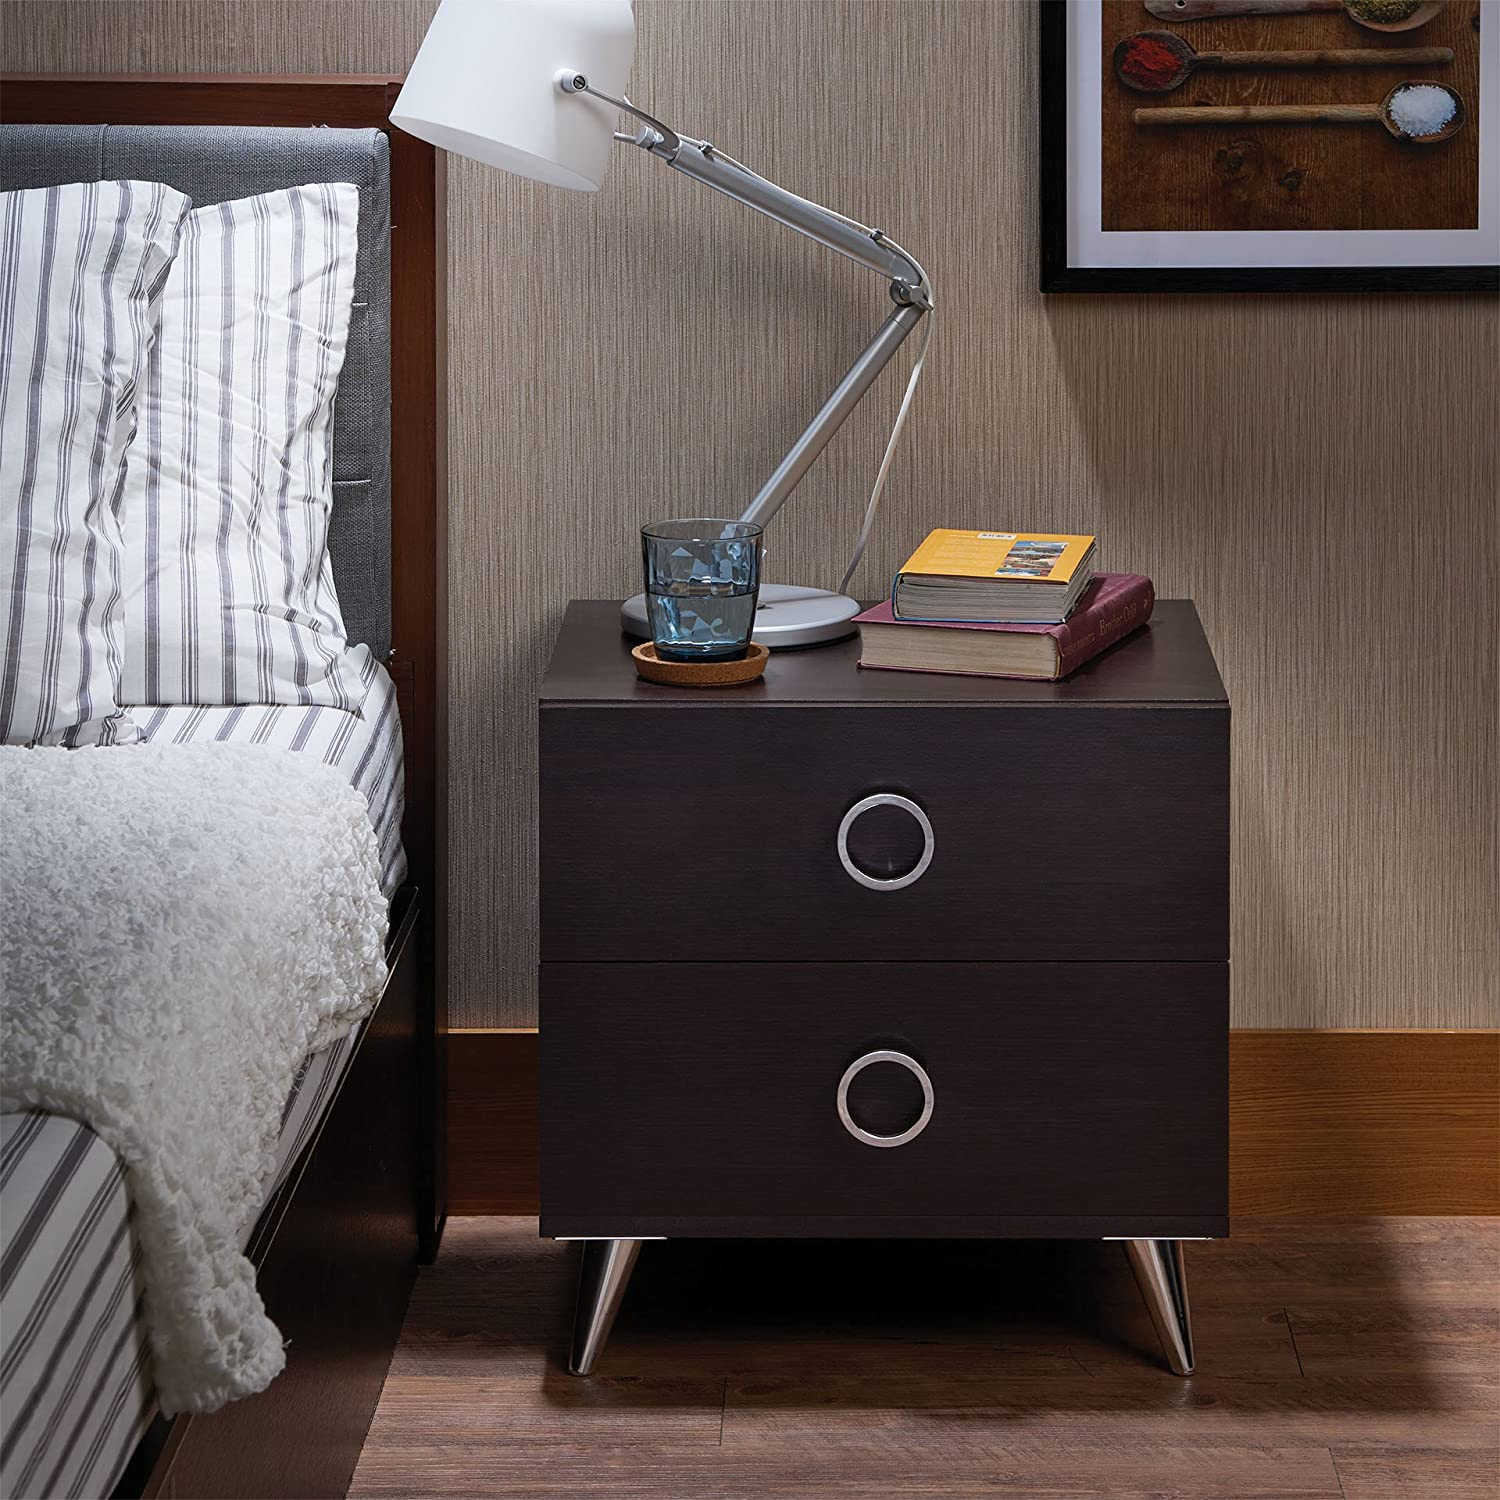 Benzara Rectangular Wood and Metal Nightstand by Elms, Brown and Silver